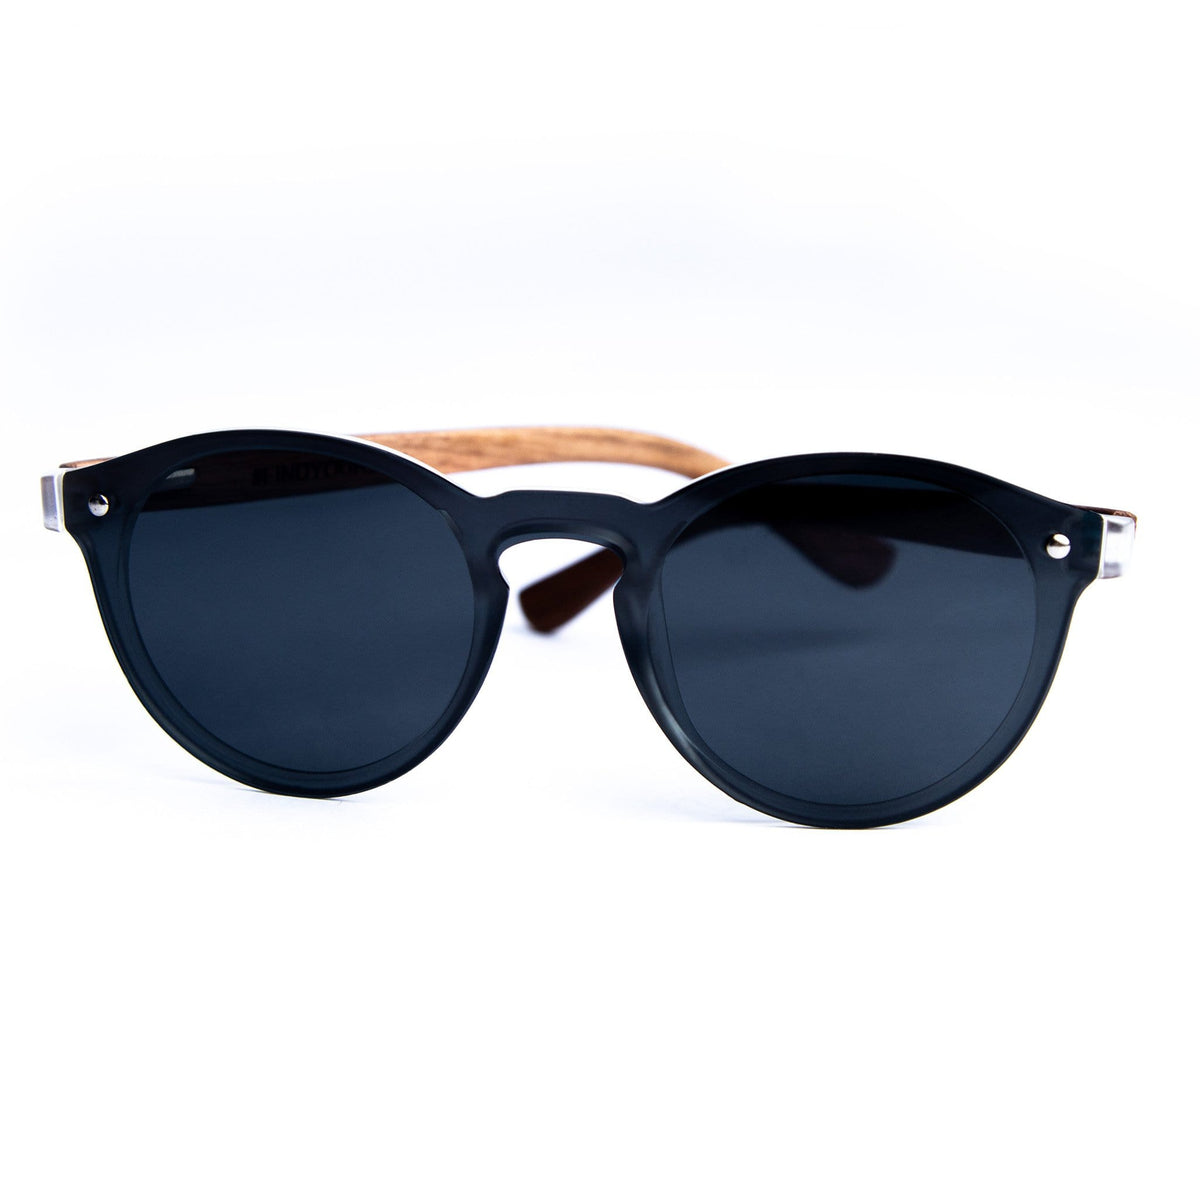 43fdd846f6 Handcrafted Wooden Sunglasses - Polarized   UV Protected